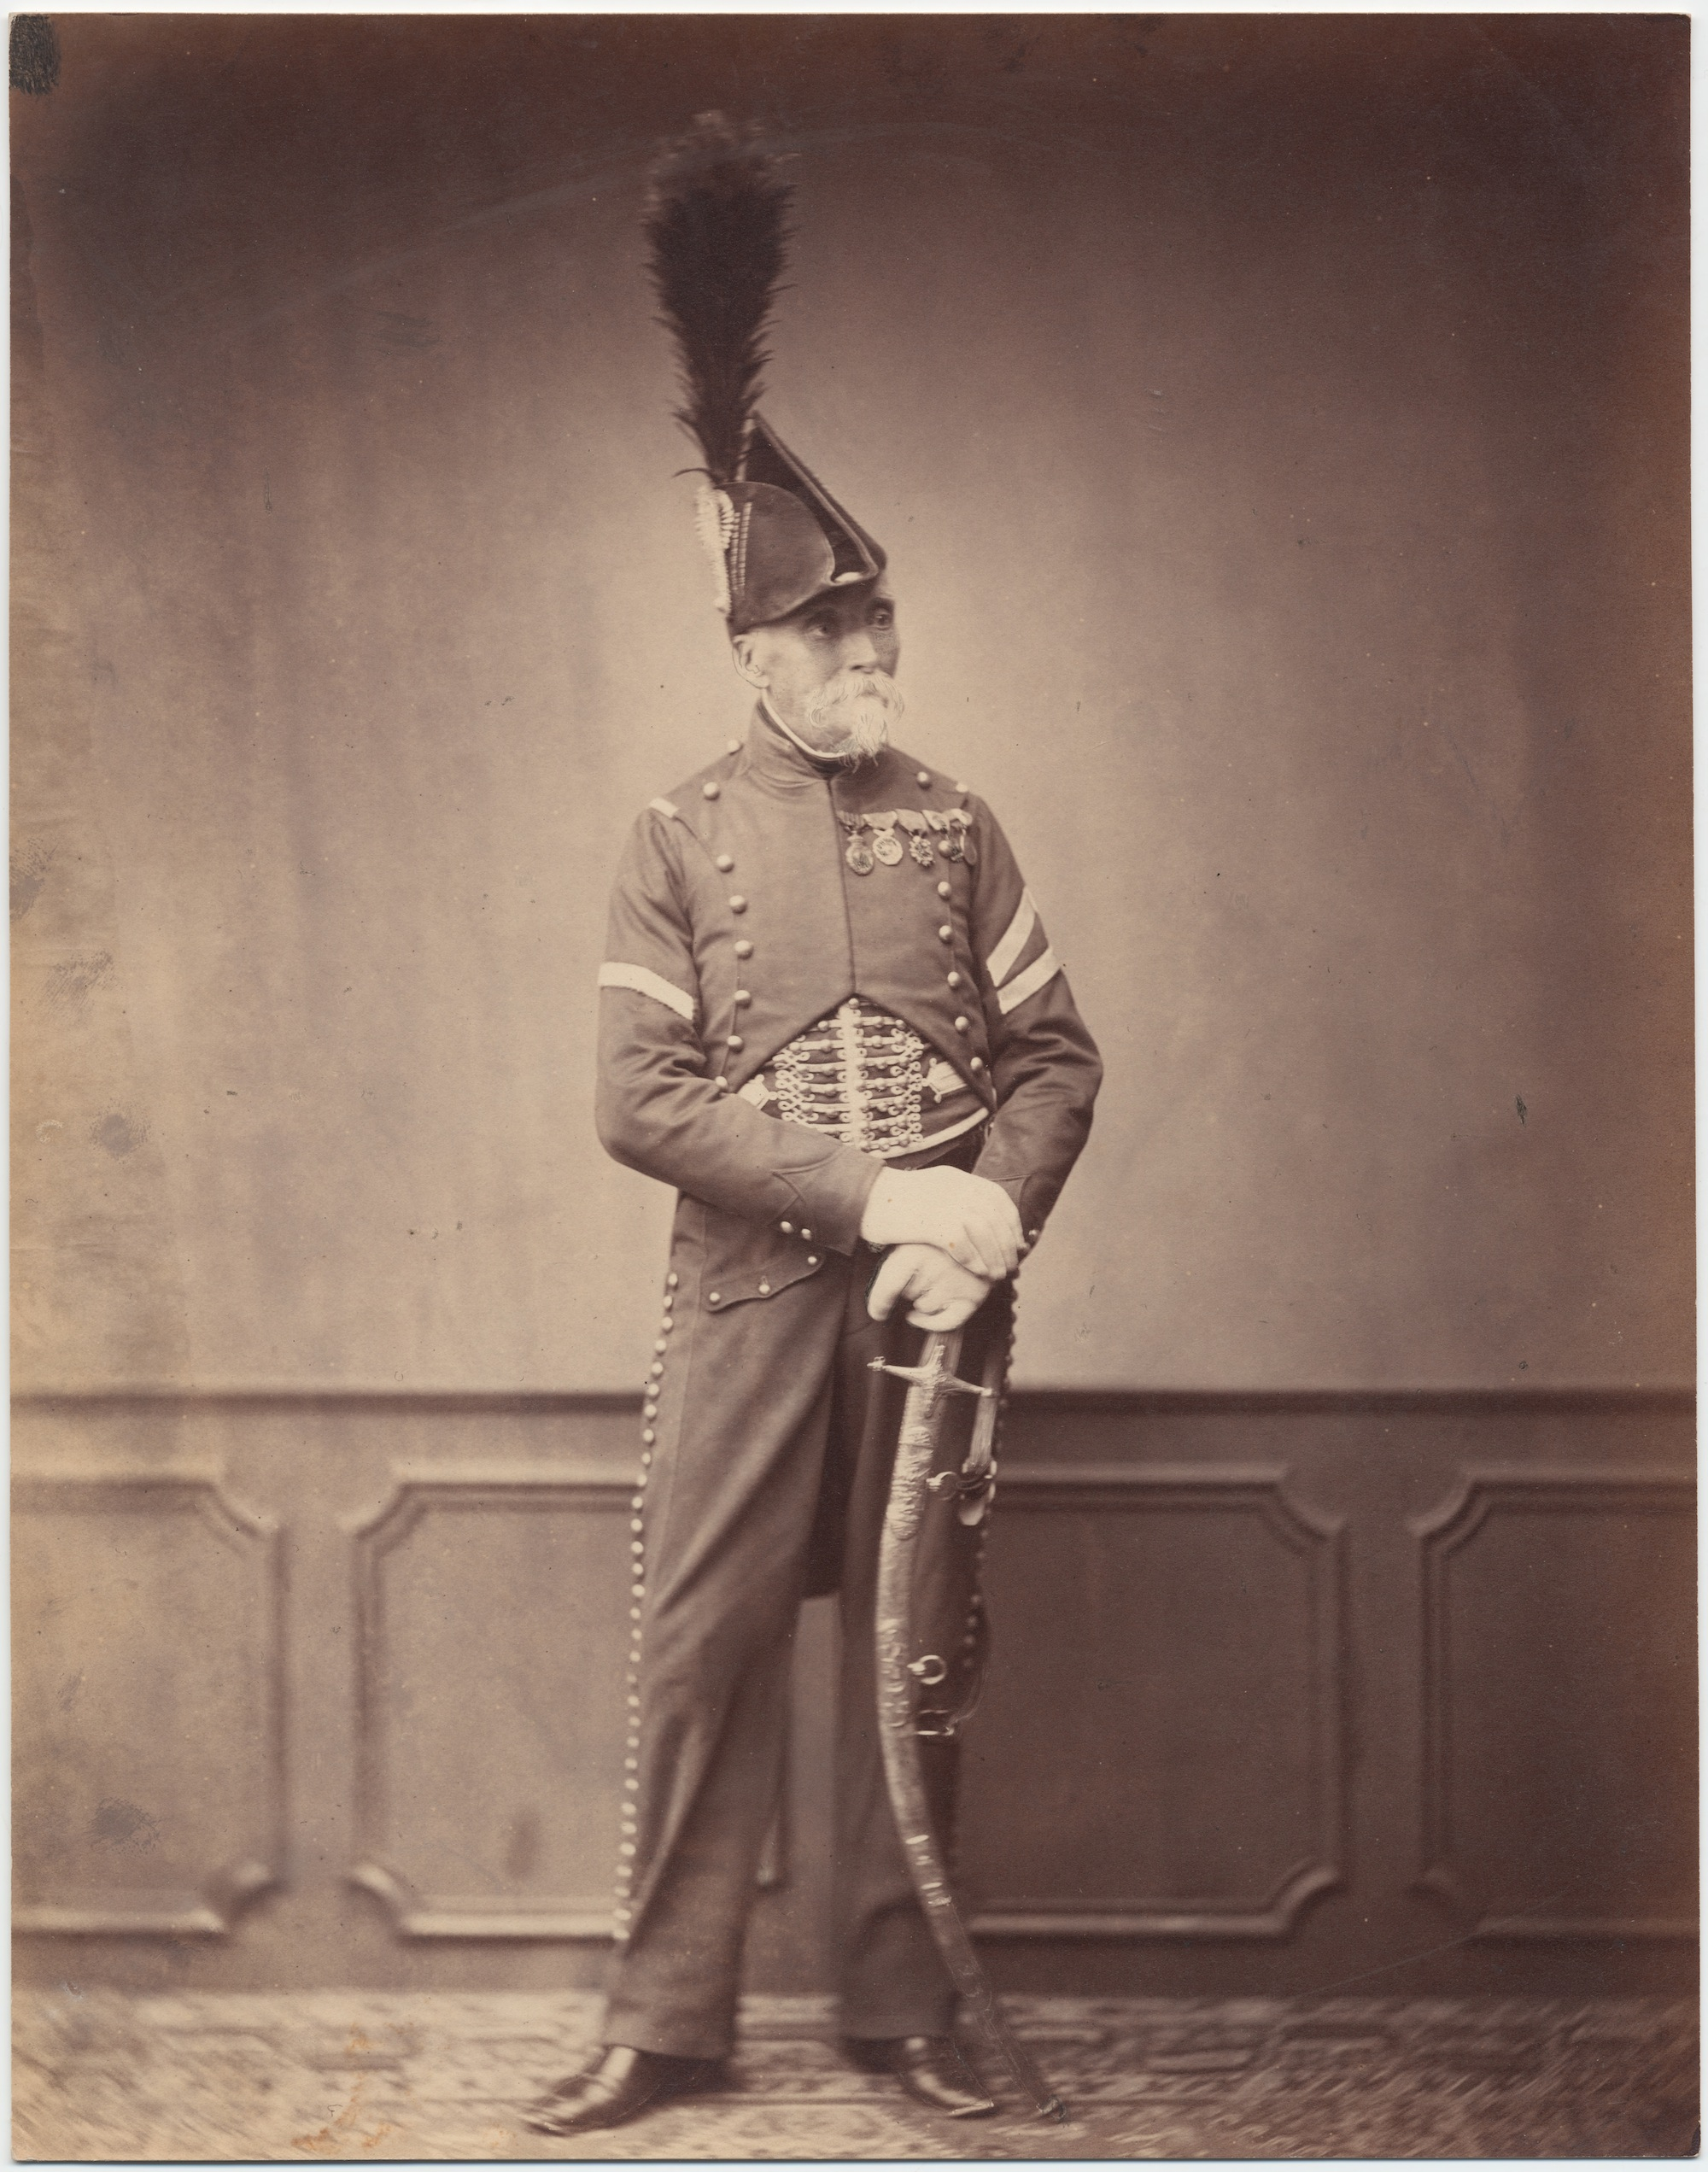 Monsieur Dupont, Fourier for the 1st Hussar